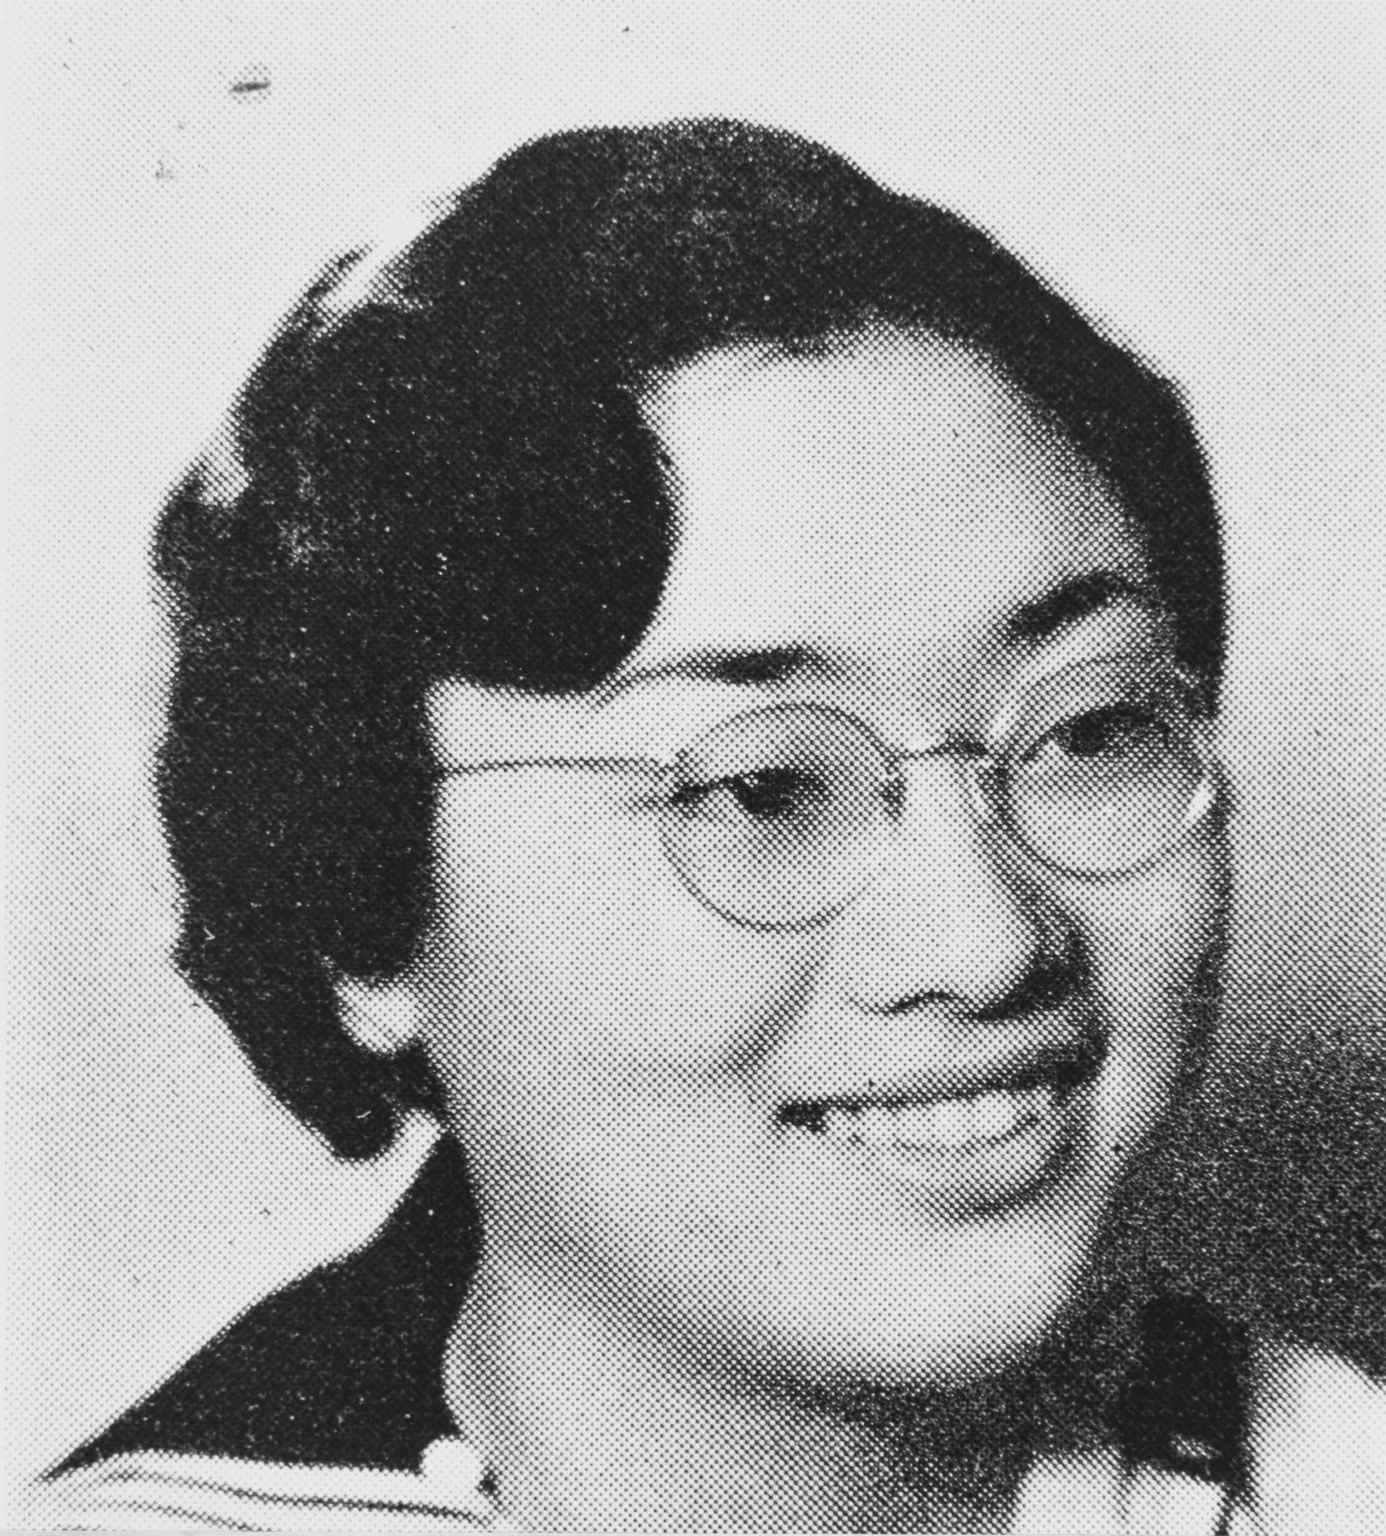 Toshi C. Inouye, Lompoc High School, Class of 1936. Toshi was active in music and performing arts through high school. When she married, her husband, Hinode, took her name. As with all other Japanese [Americans], they too had to evacuate the coast in 1942. But Toshi and her husband came back to rear two children in Lompoc, a boy and a girl. Toshi lived there until her death in December 1993.